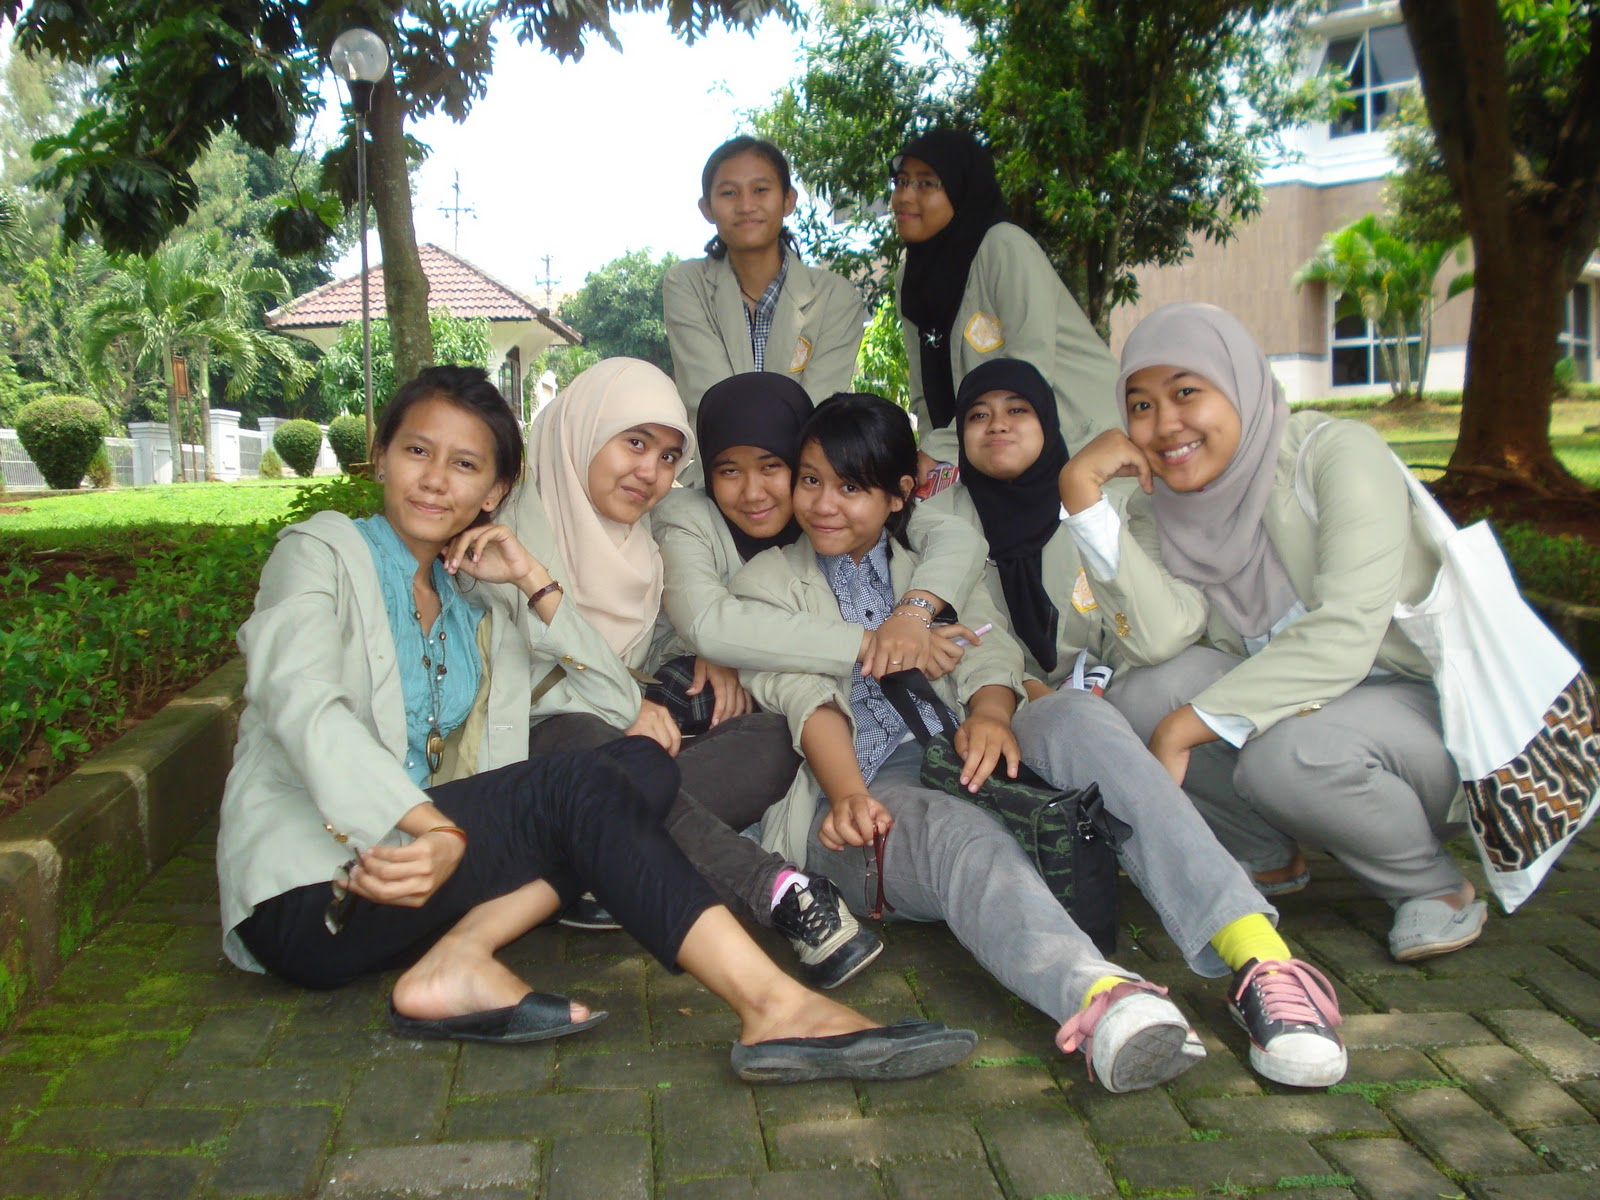 these are my grils' classmates, and There're just 8 girls in the class